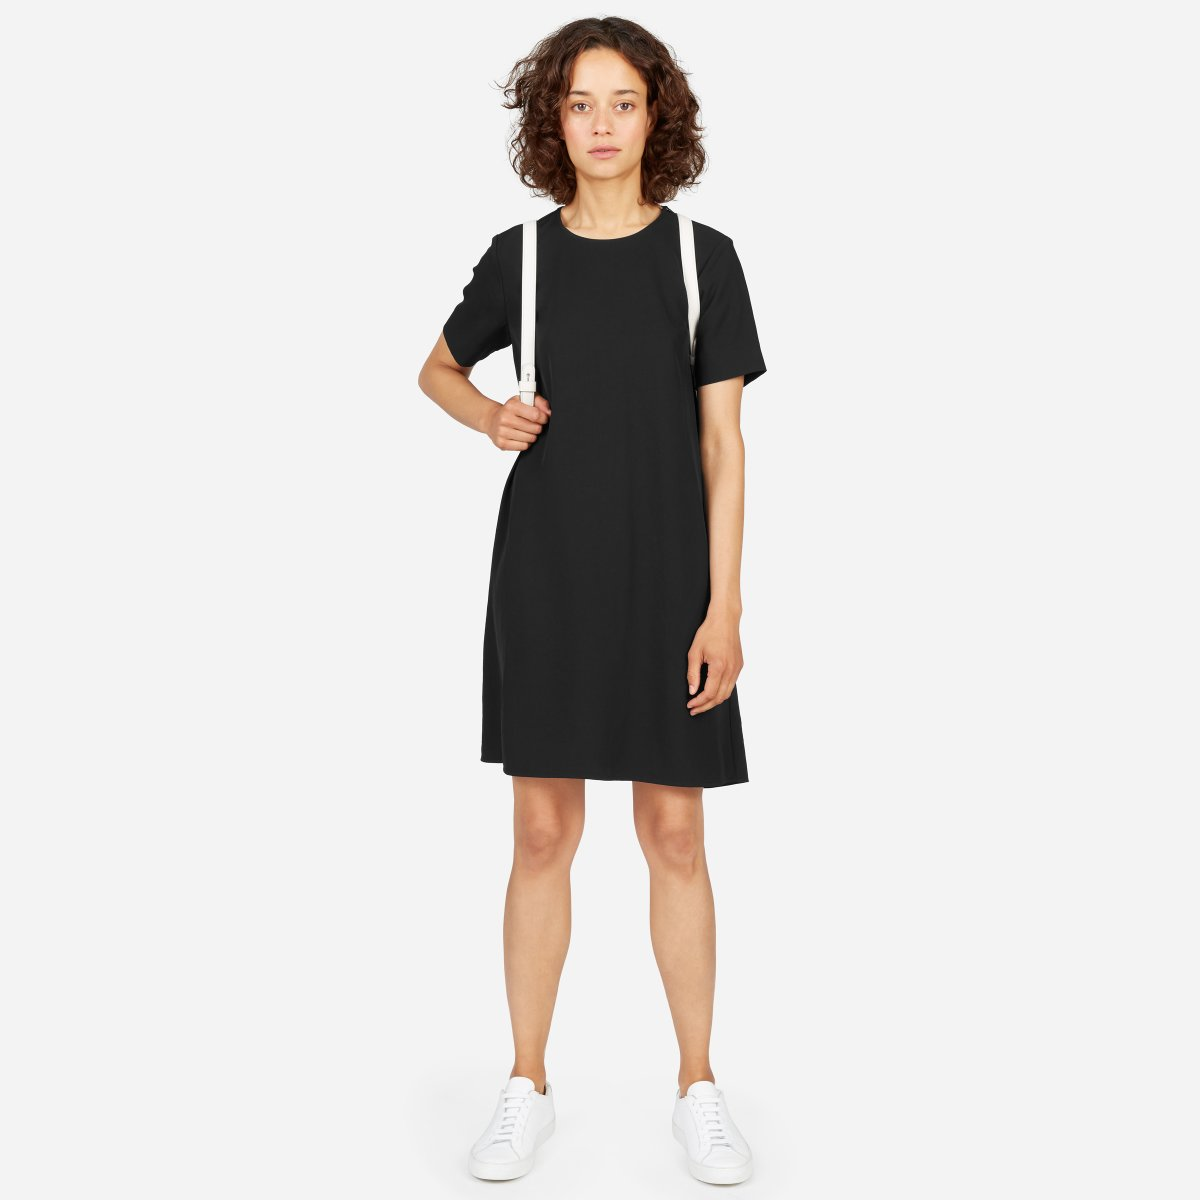 839d0ead9a37f6 13 Comfortable Dresses That Are Made to Travel In | The Fashion ...